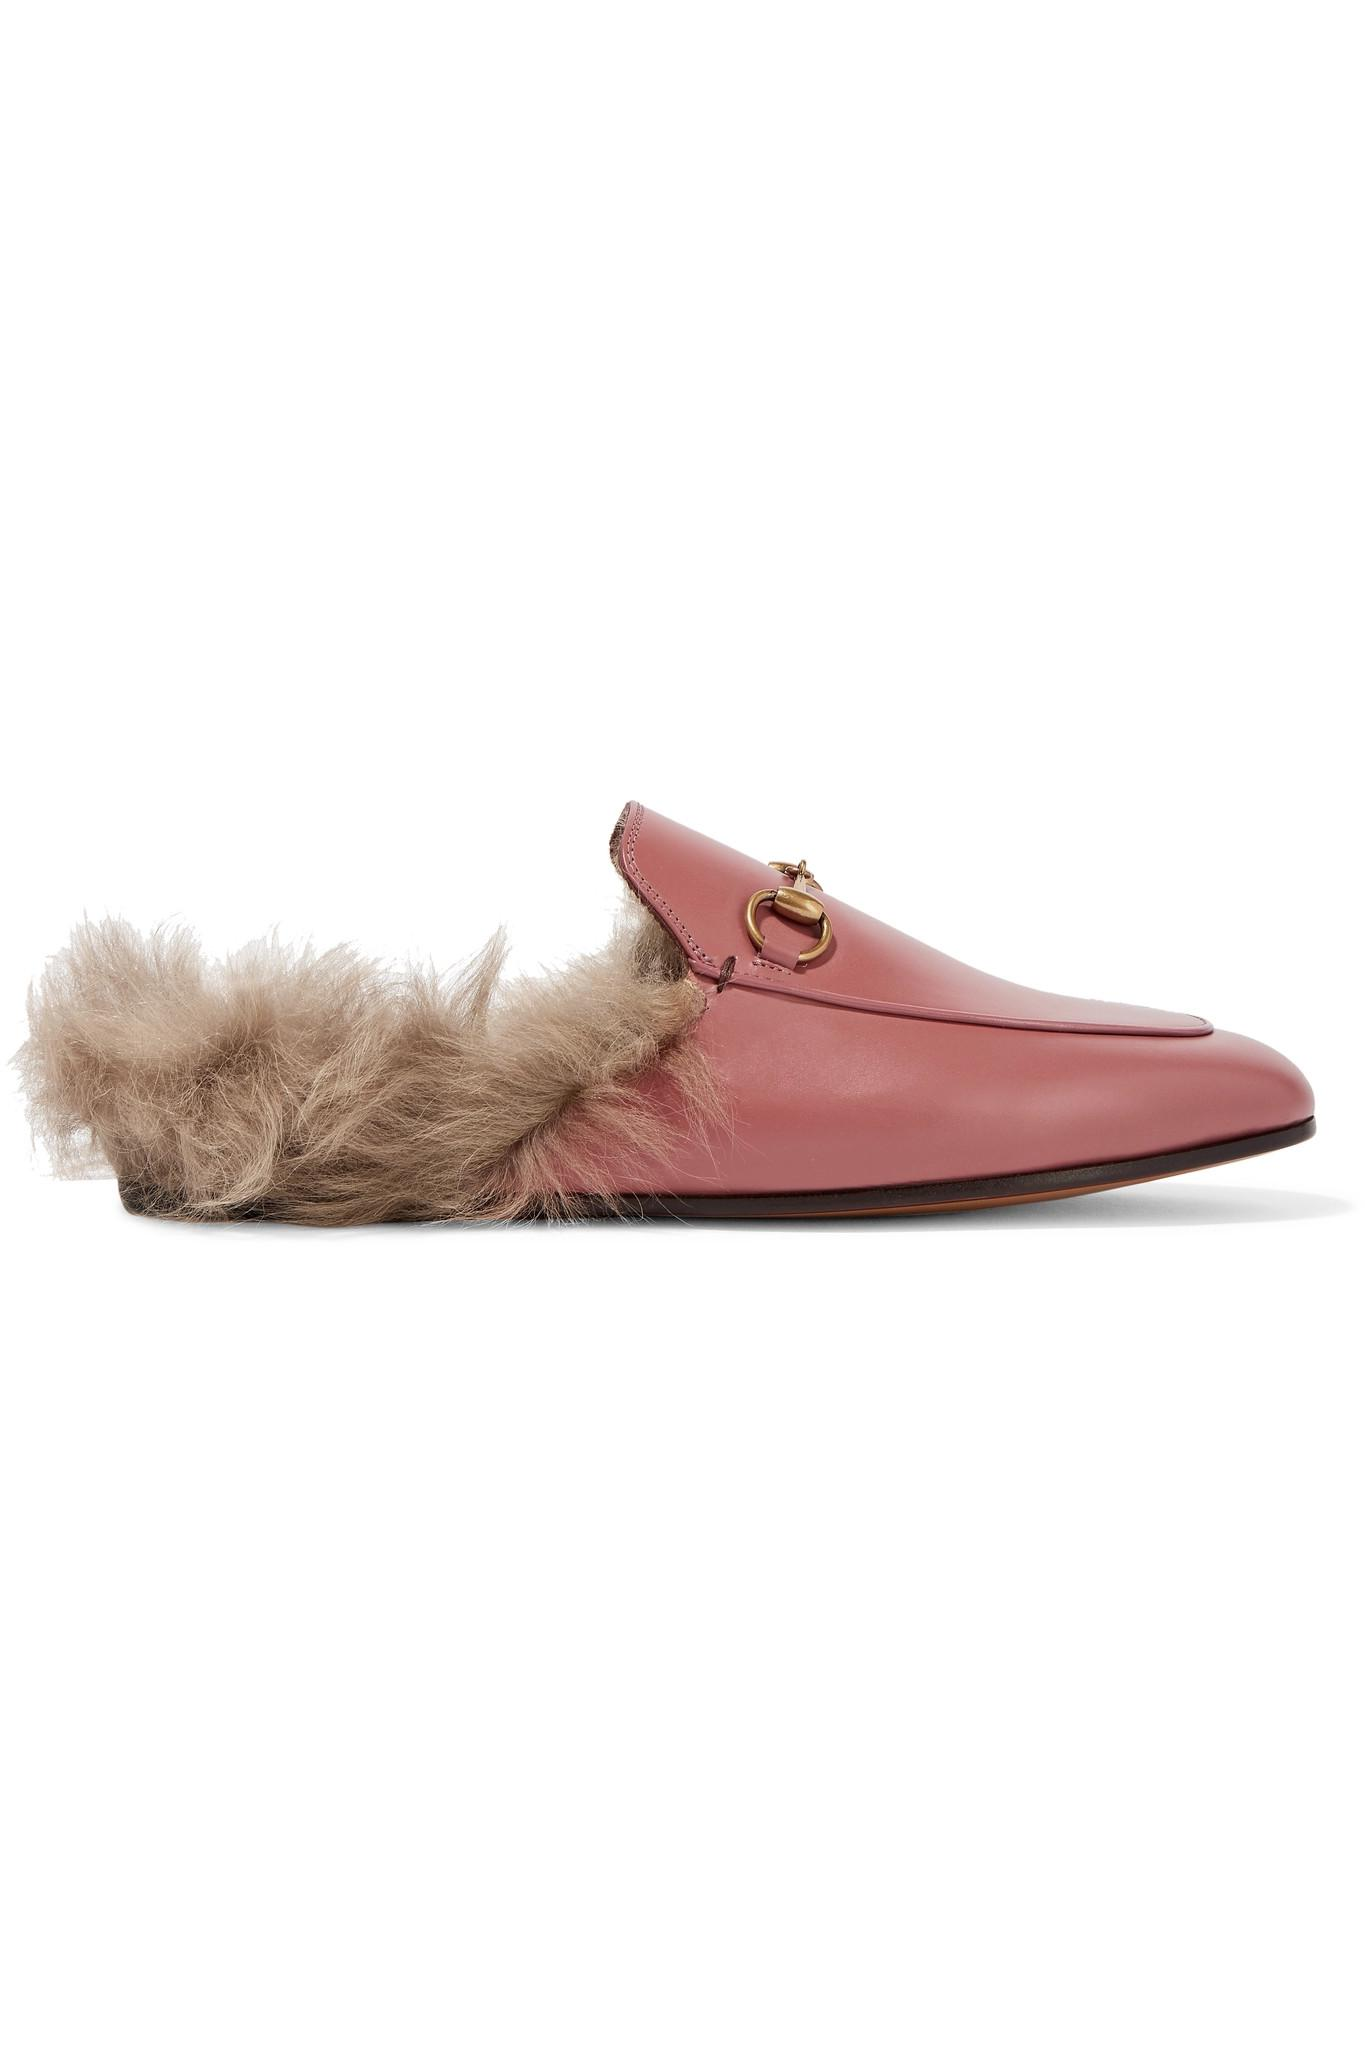 51ff84b6ea2 Gucci. Women s Pink Princetown Horsebit-detailed Shearling-lined Leather  Slippers